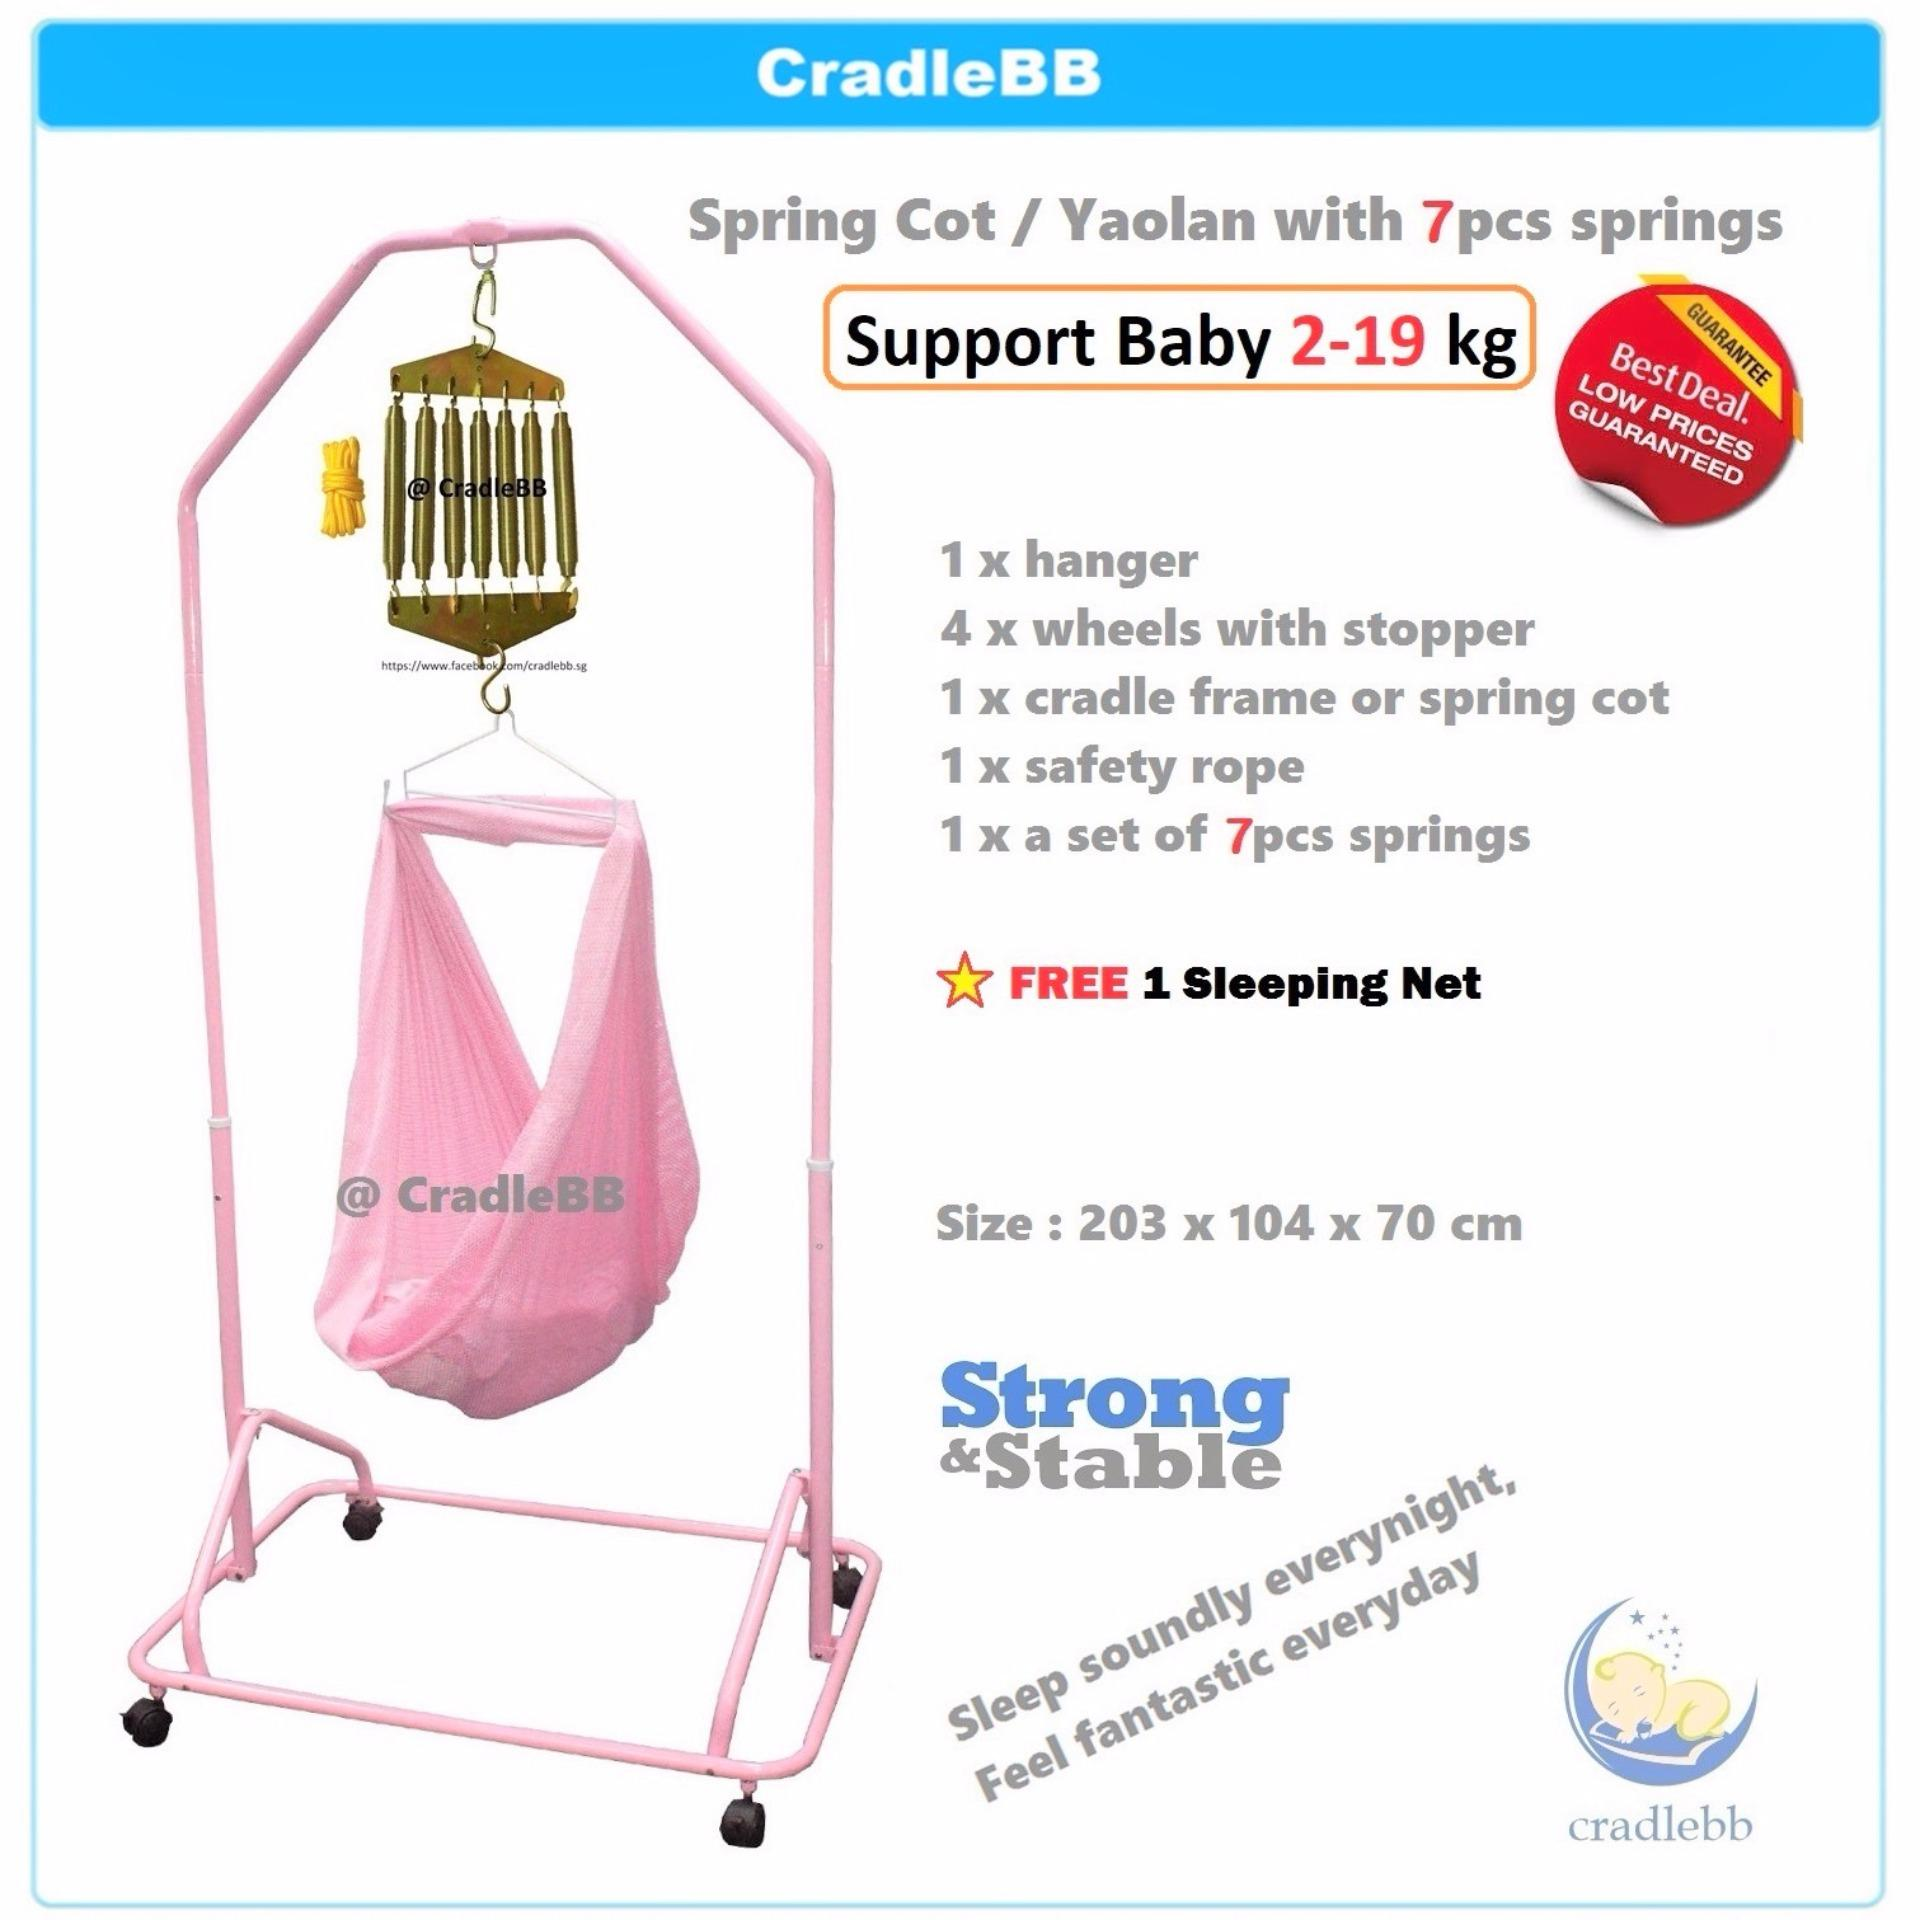 Baby Cradle/ Spring Cot/ Yaolan/hammock + 7 Pcs Spring (free 1 Net) By Cradlebb.